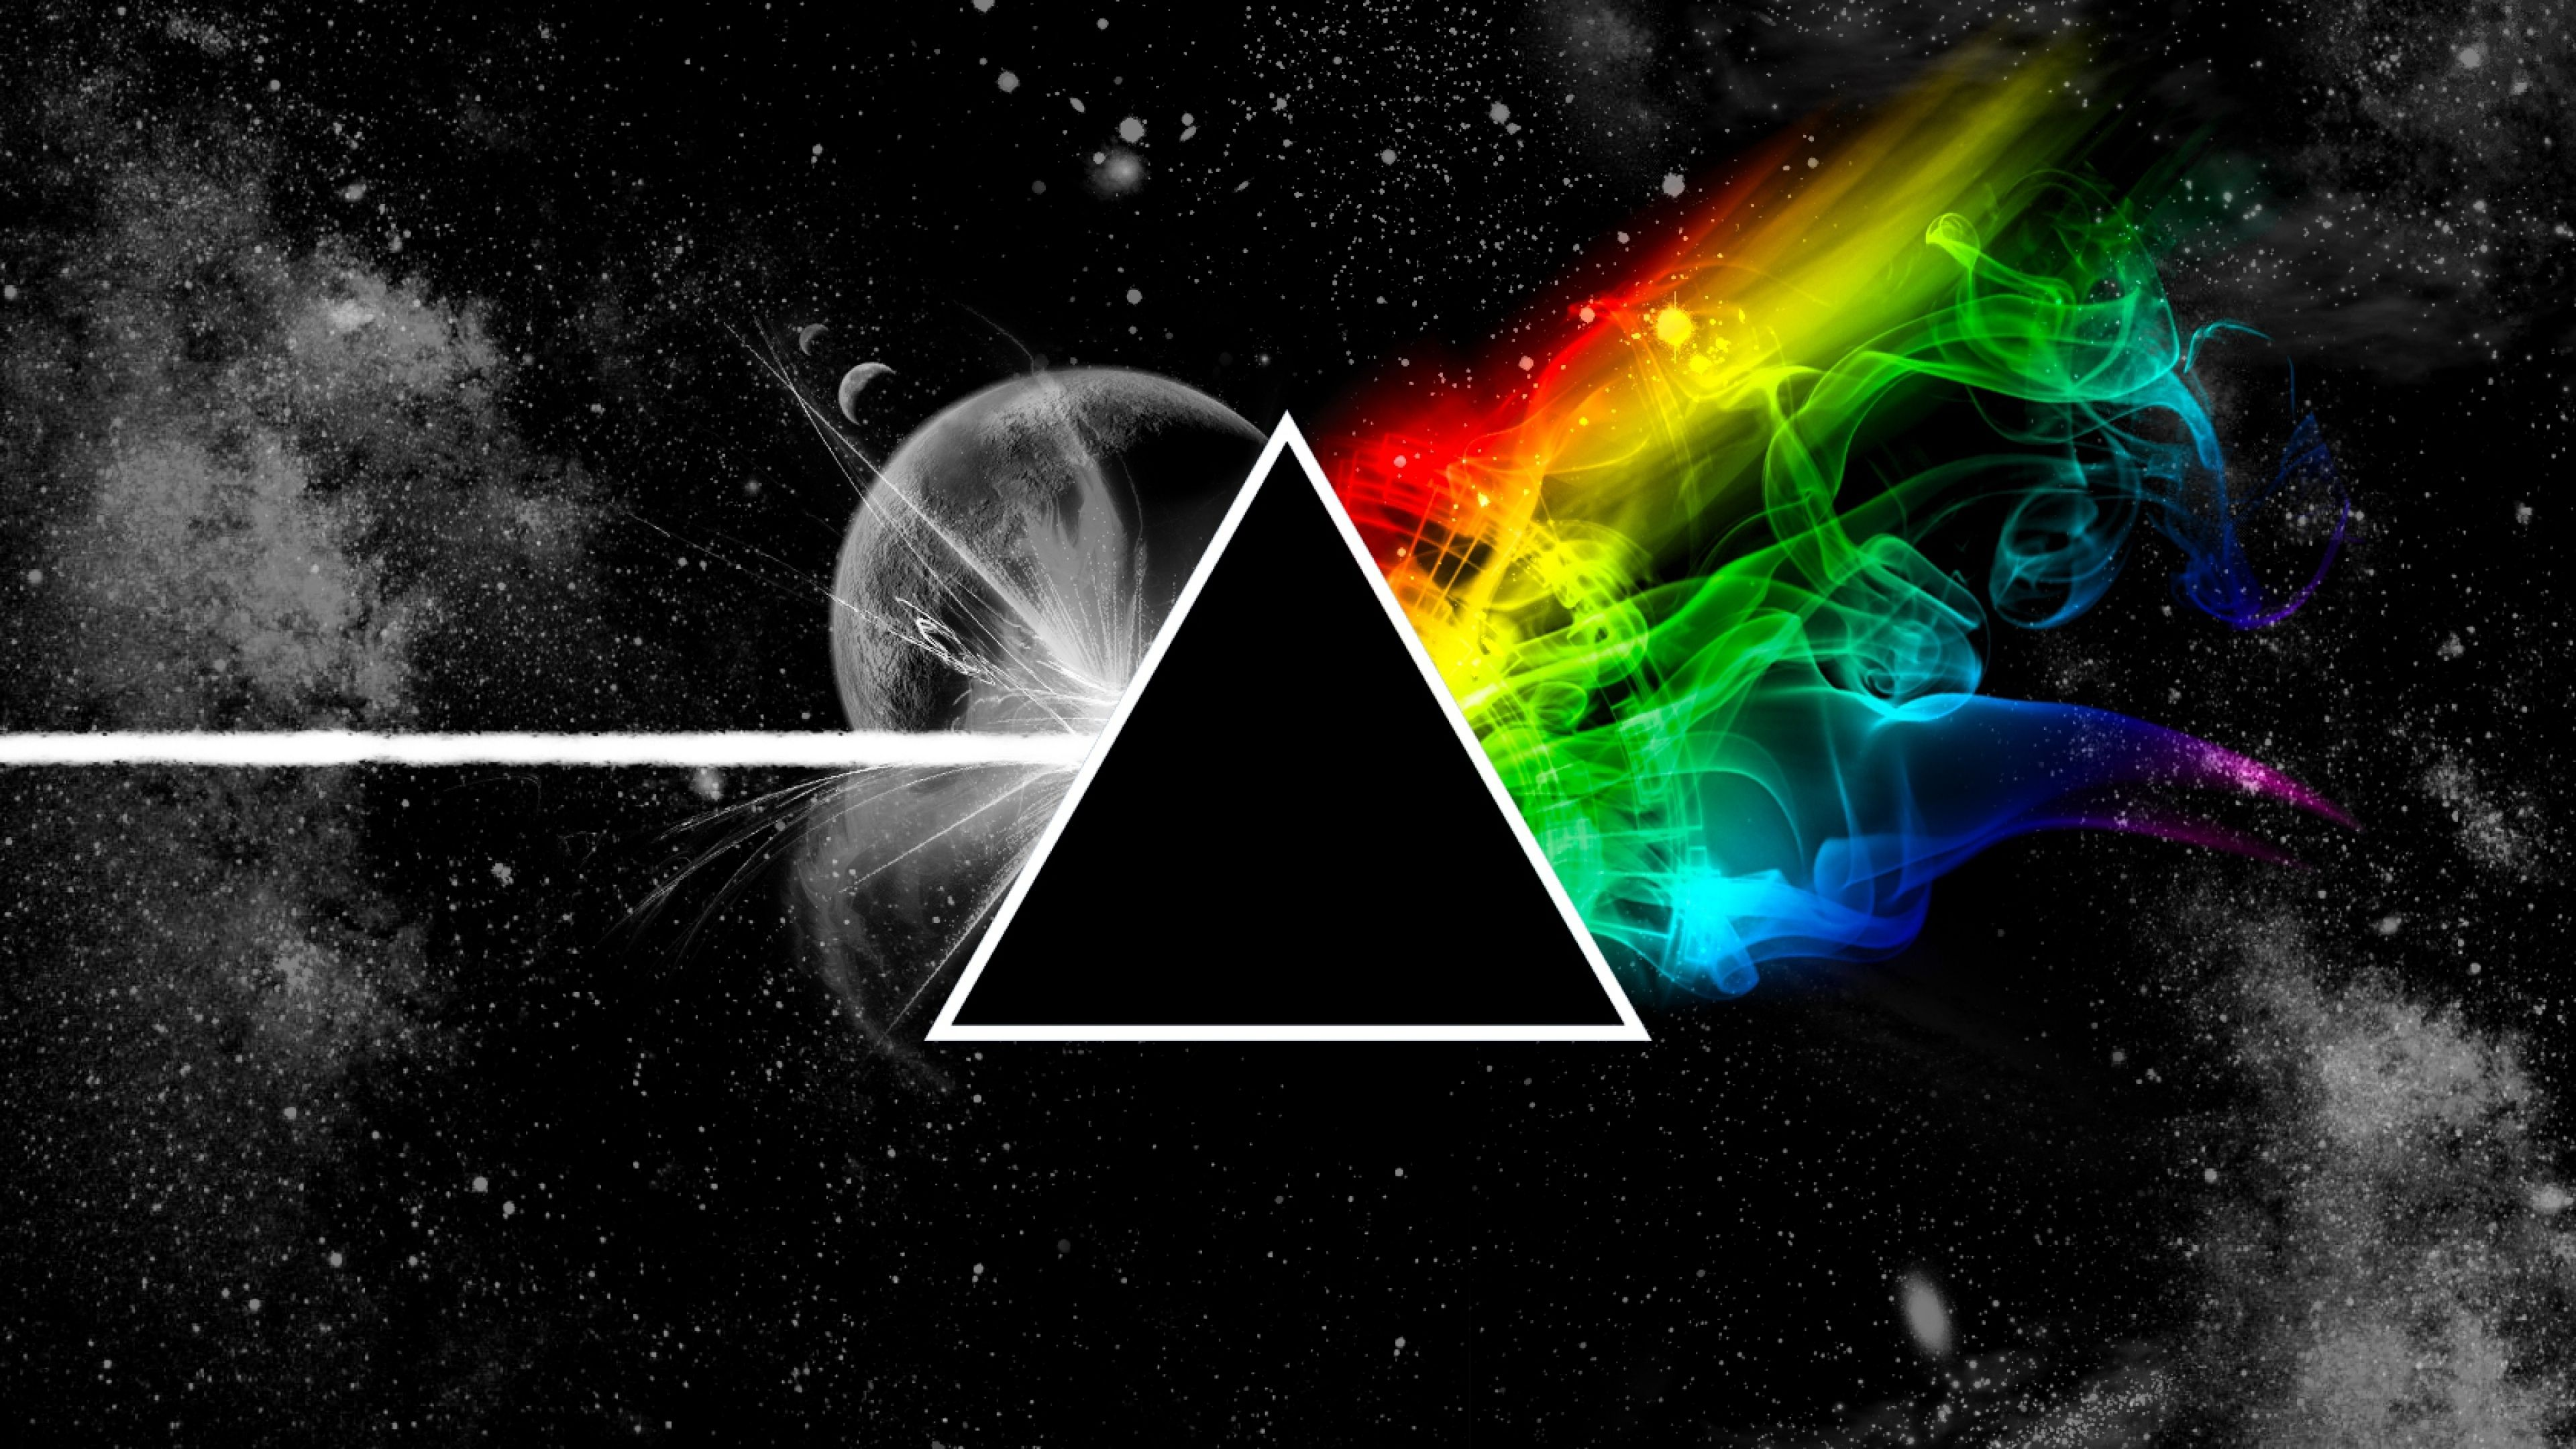 Ultra Hd Wallpapers Hd Wallpapers Backgrounds Of Your Choice Pink Floyd Dark Side Fondos Para Pc Tumblr Pantalla De Laptop